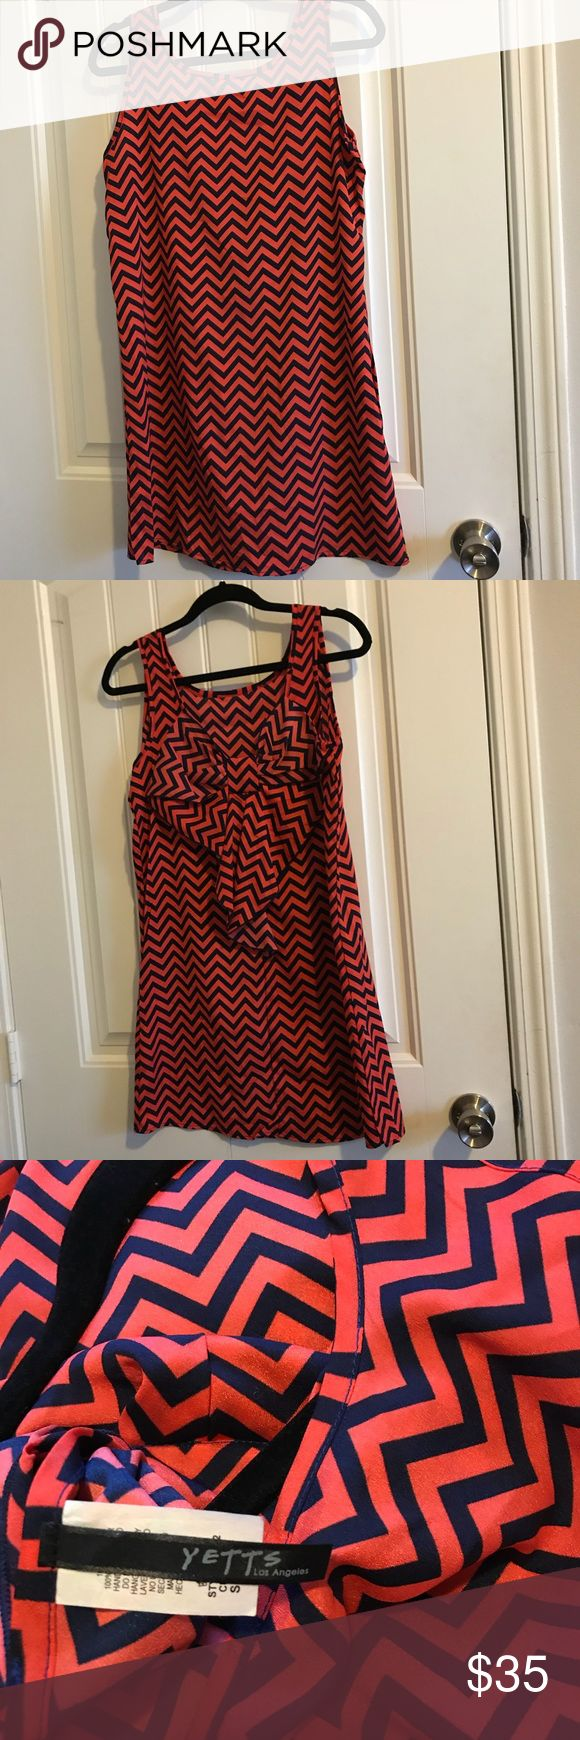 Chevron Dress Navy & Orange Navy & Dark Orange Chevron Dress with bow in the back. New without tags. Never worn, in great condition. Dresses